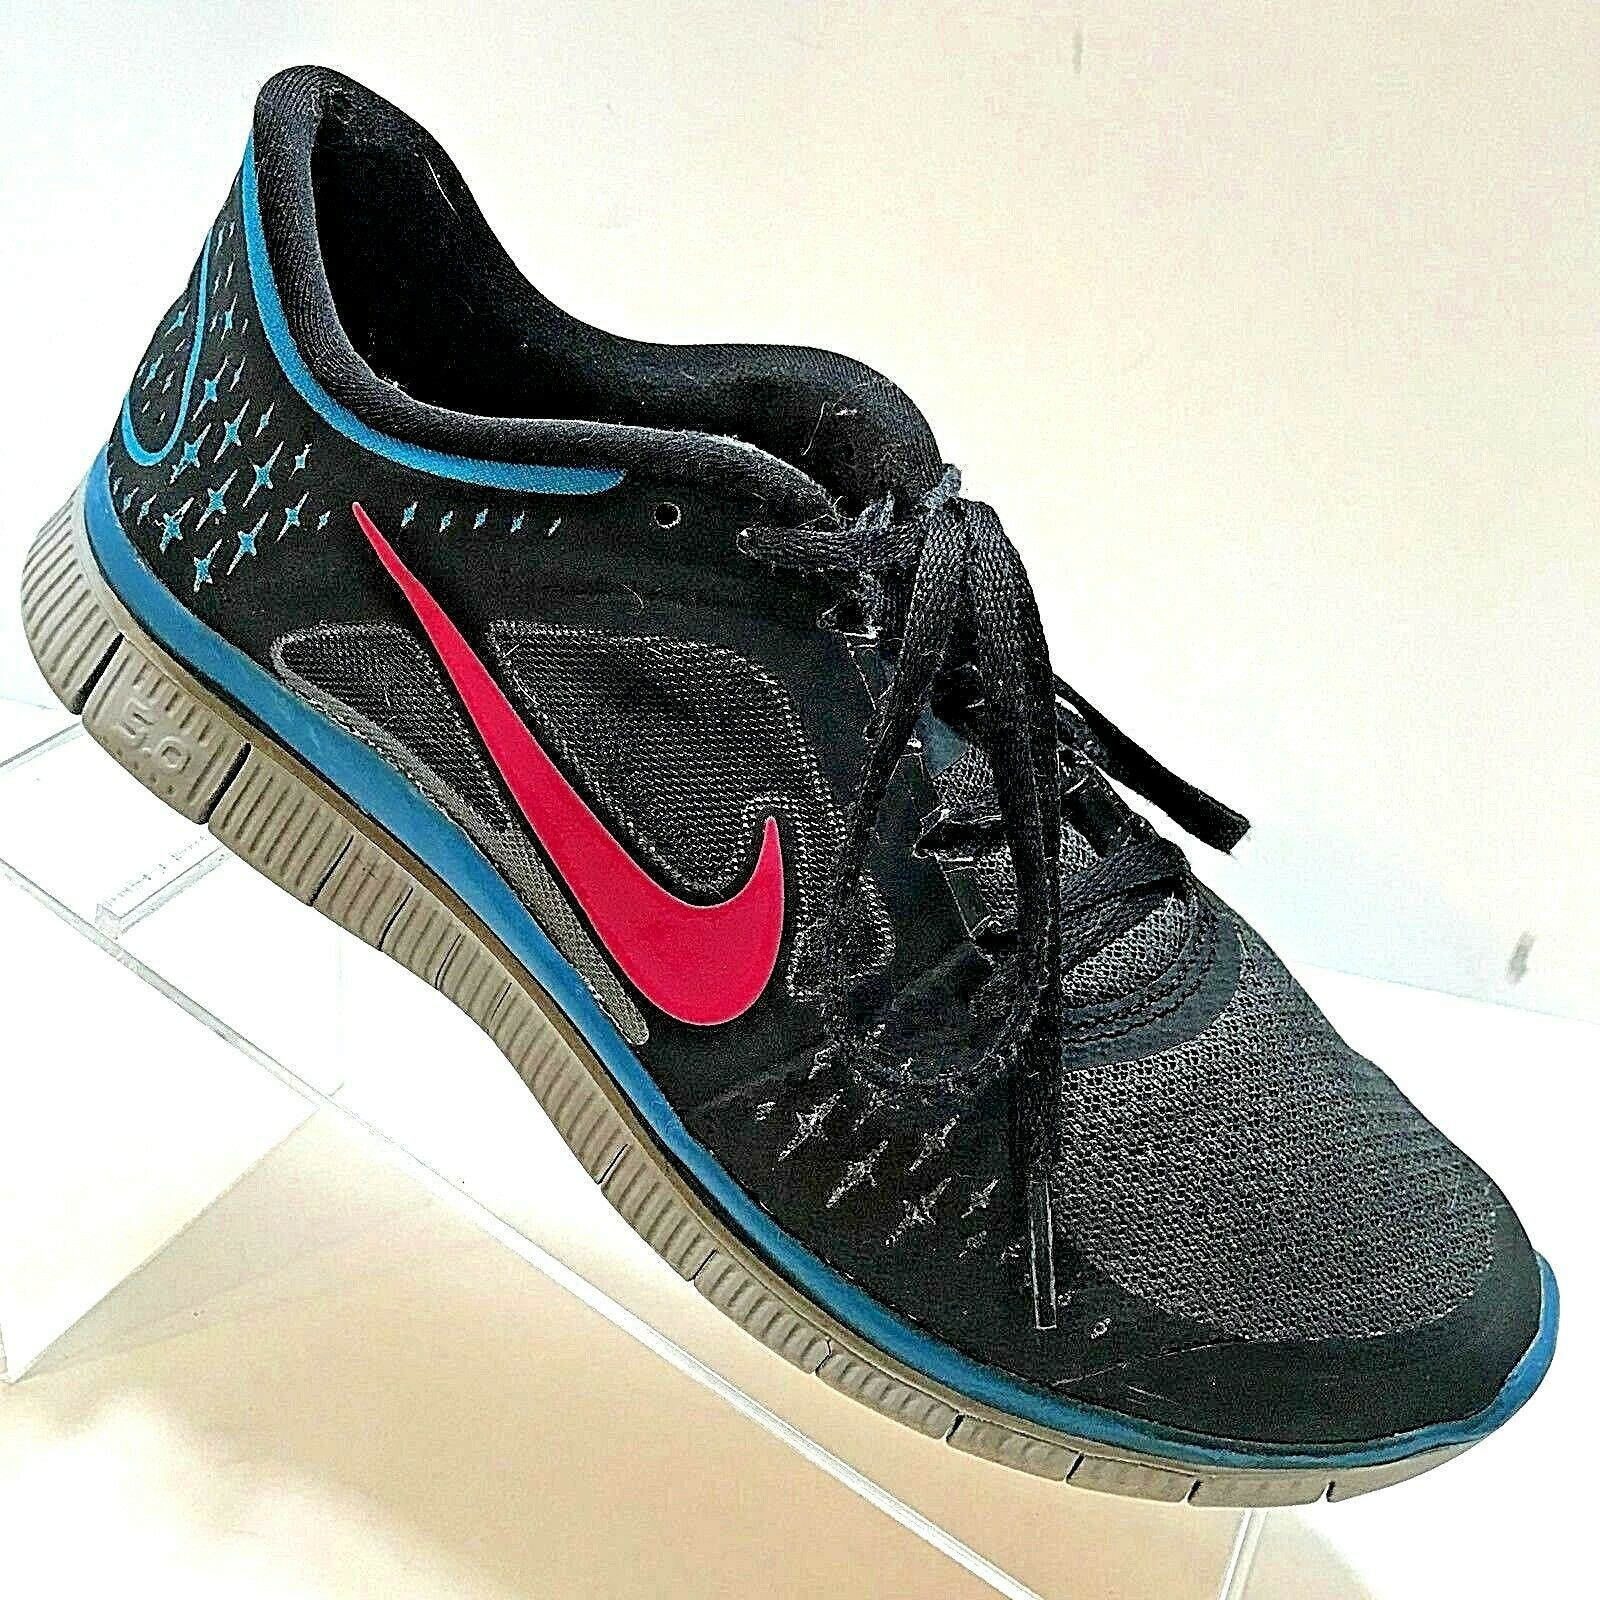 official photos 4f5d4 7b7f8 Nike Free Run 3 Size 10 Women Black Running and 9 similar items